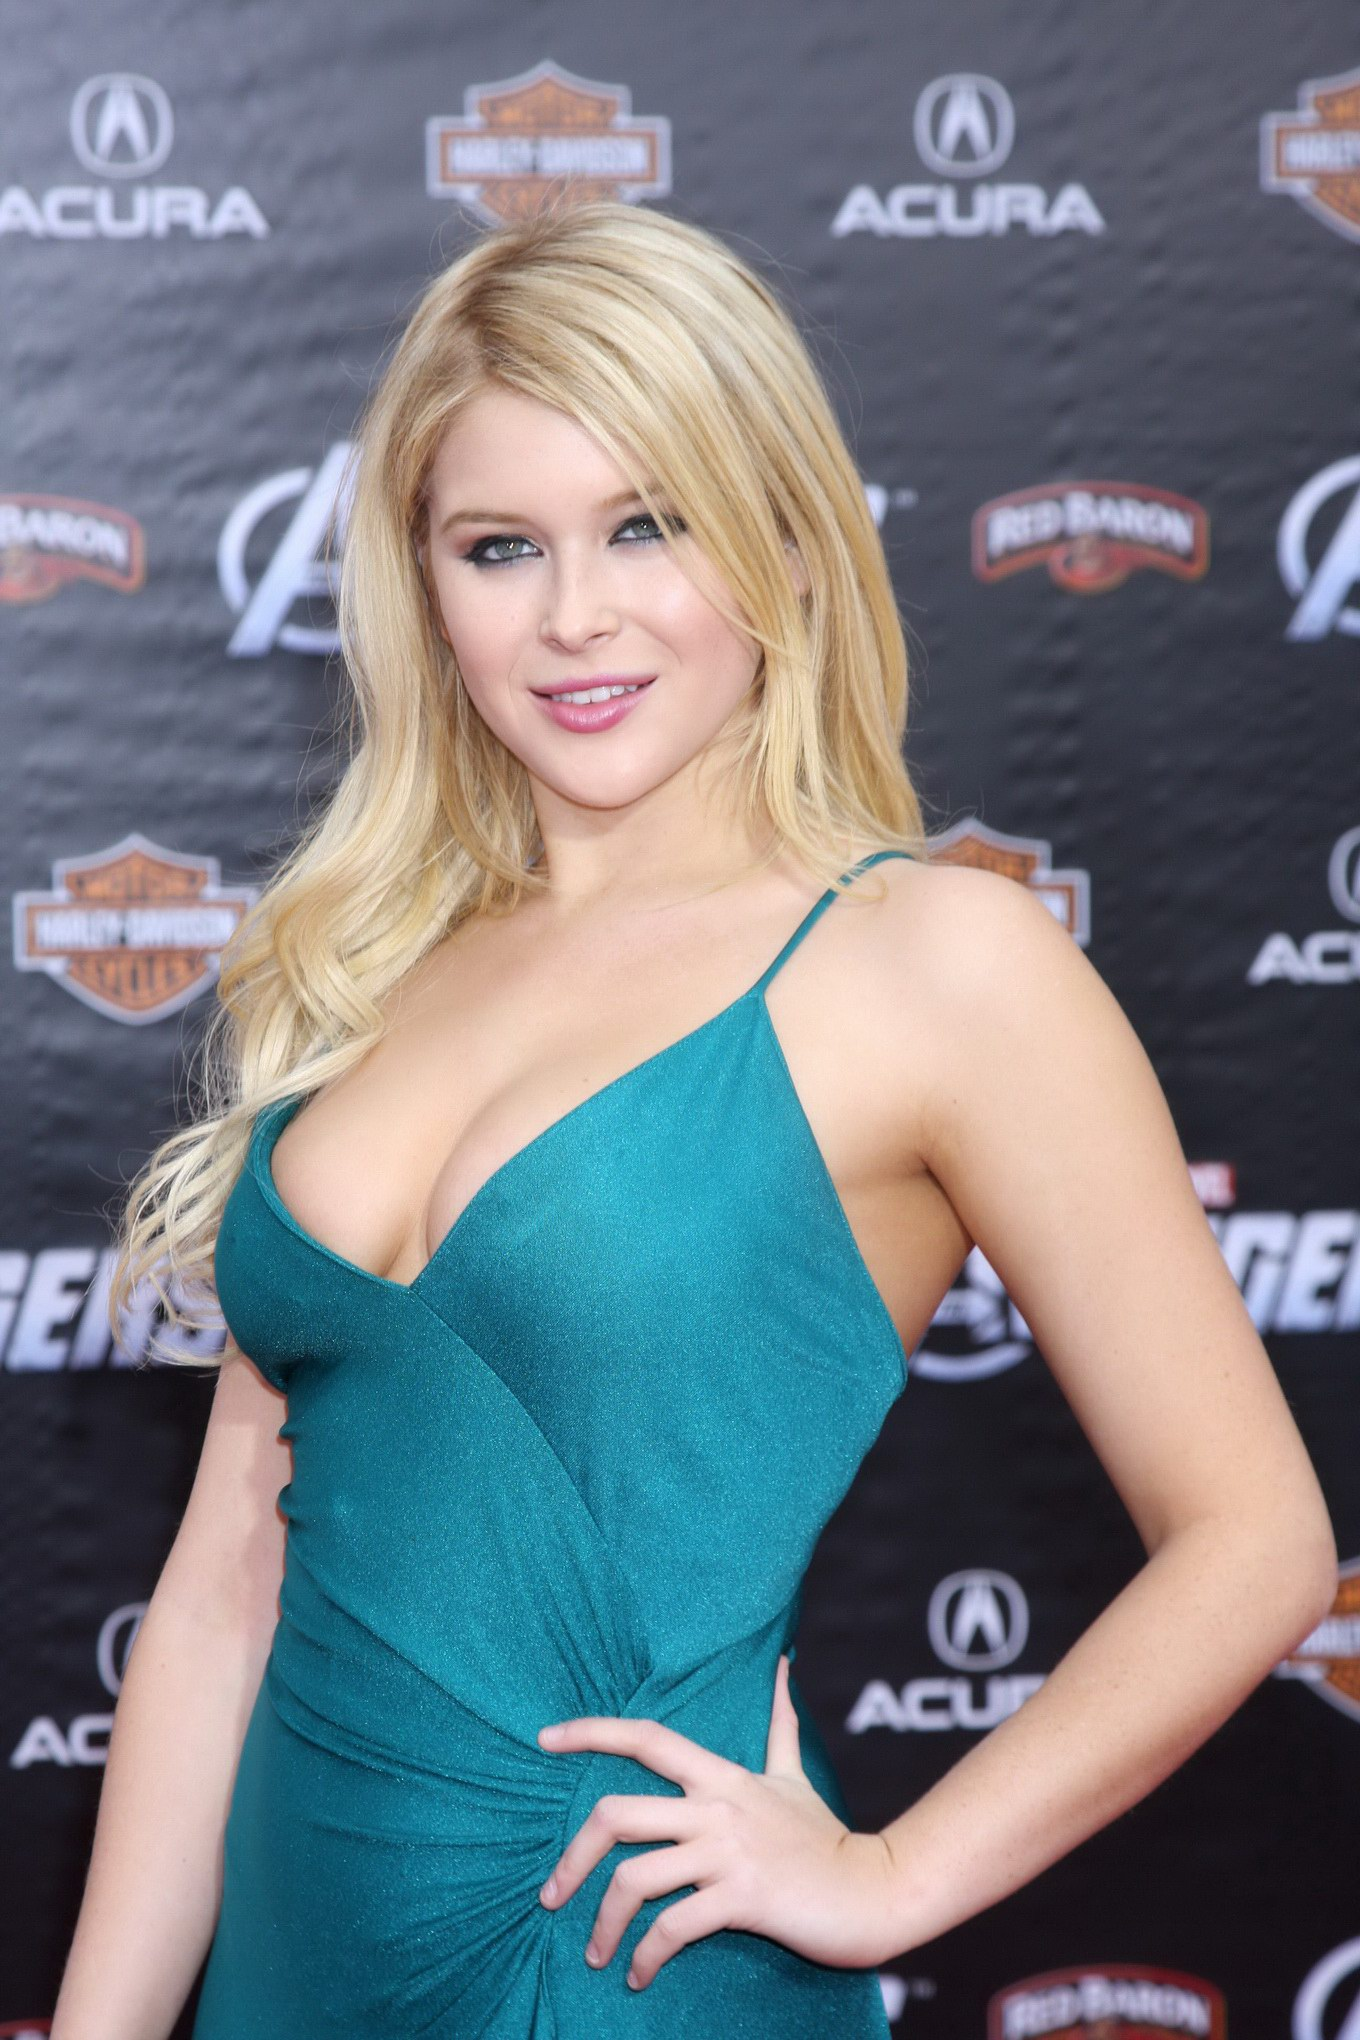 Can recommend Renee olstead cleavage agree with